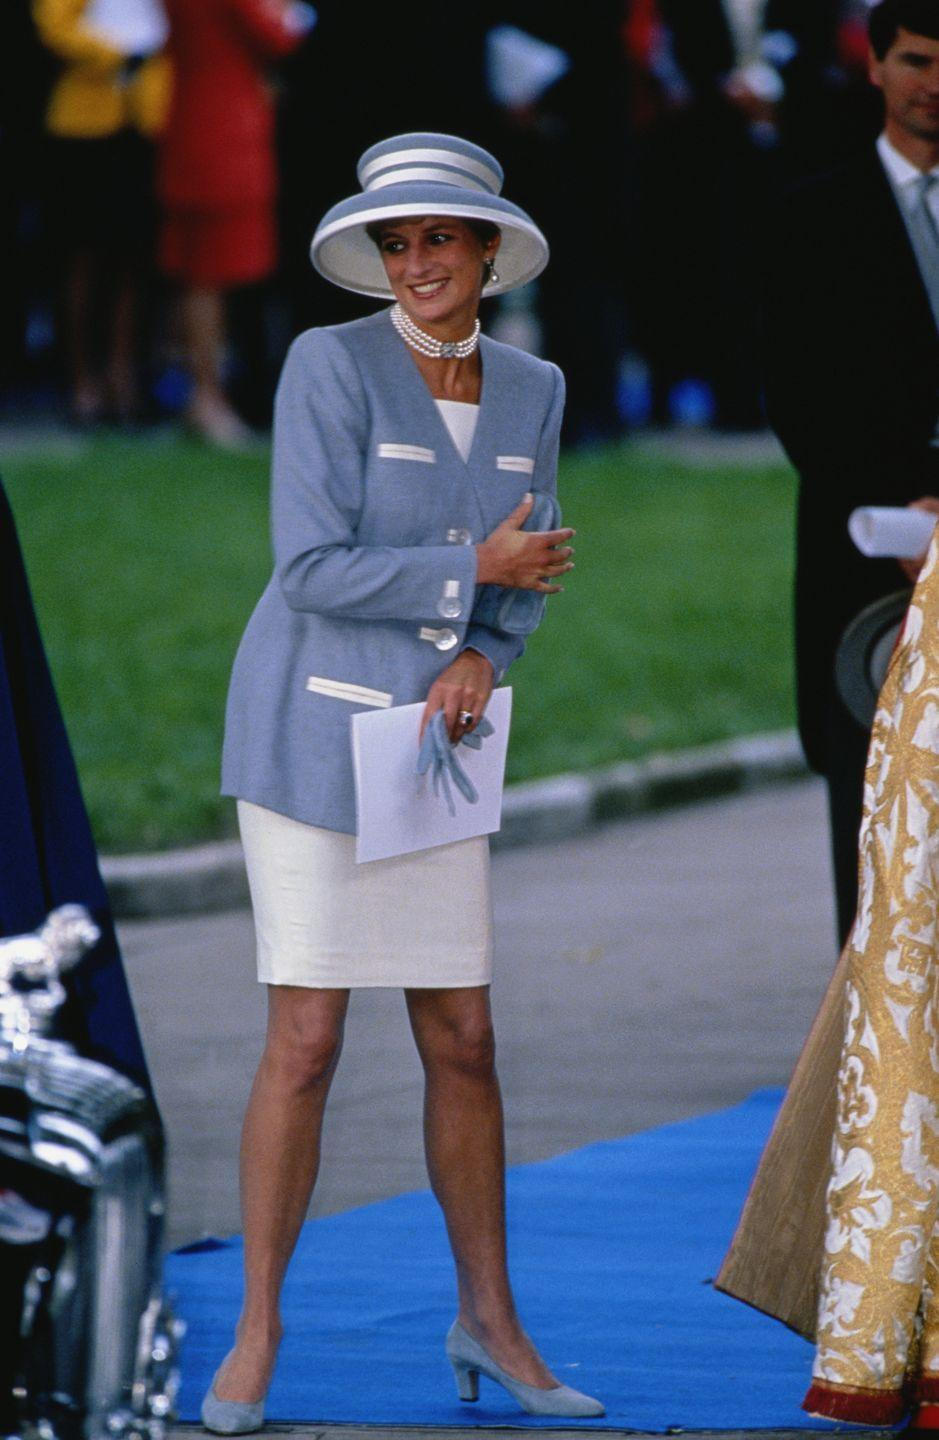 """<p>Princess Diana is seen here in a blue-and-white hat at the wedding of Princess Margaret's son David Armstrong-Jones, Viscount Linley and the Hon. Serena Stanhope.</p><p><strong><a href=""""https://www.townandcountrymag.com/society/tradition/a17007111/princess-margaret-children/"""" rel=""""nofollow noopener"""" target=""""_blank"""" data-ylk=""""slk:More: Here's What You Need to Know About Princess Margaret's Children"""" class=""""link rapid-noclick-resp"""">More: Here's What You Need to Know About Princess Margaret's Children</a></strong><br></p>"""